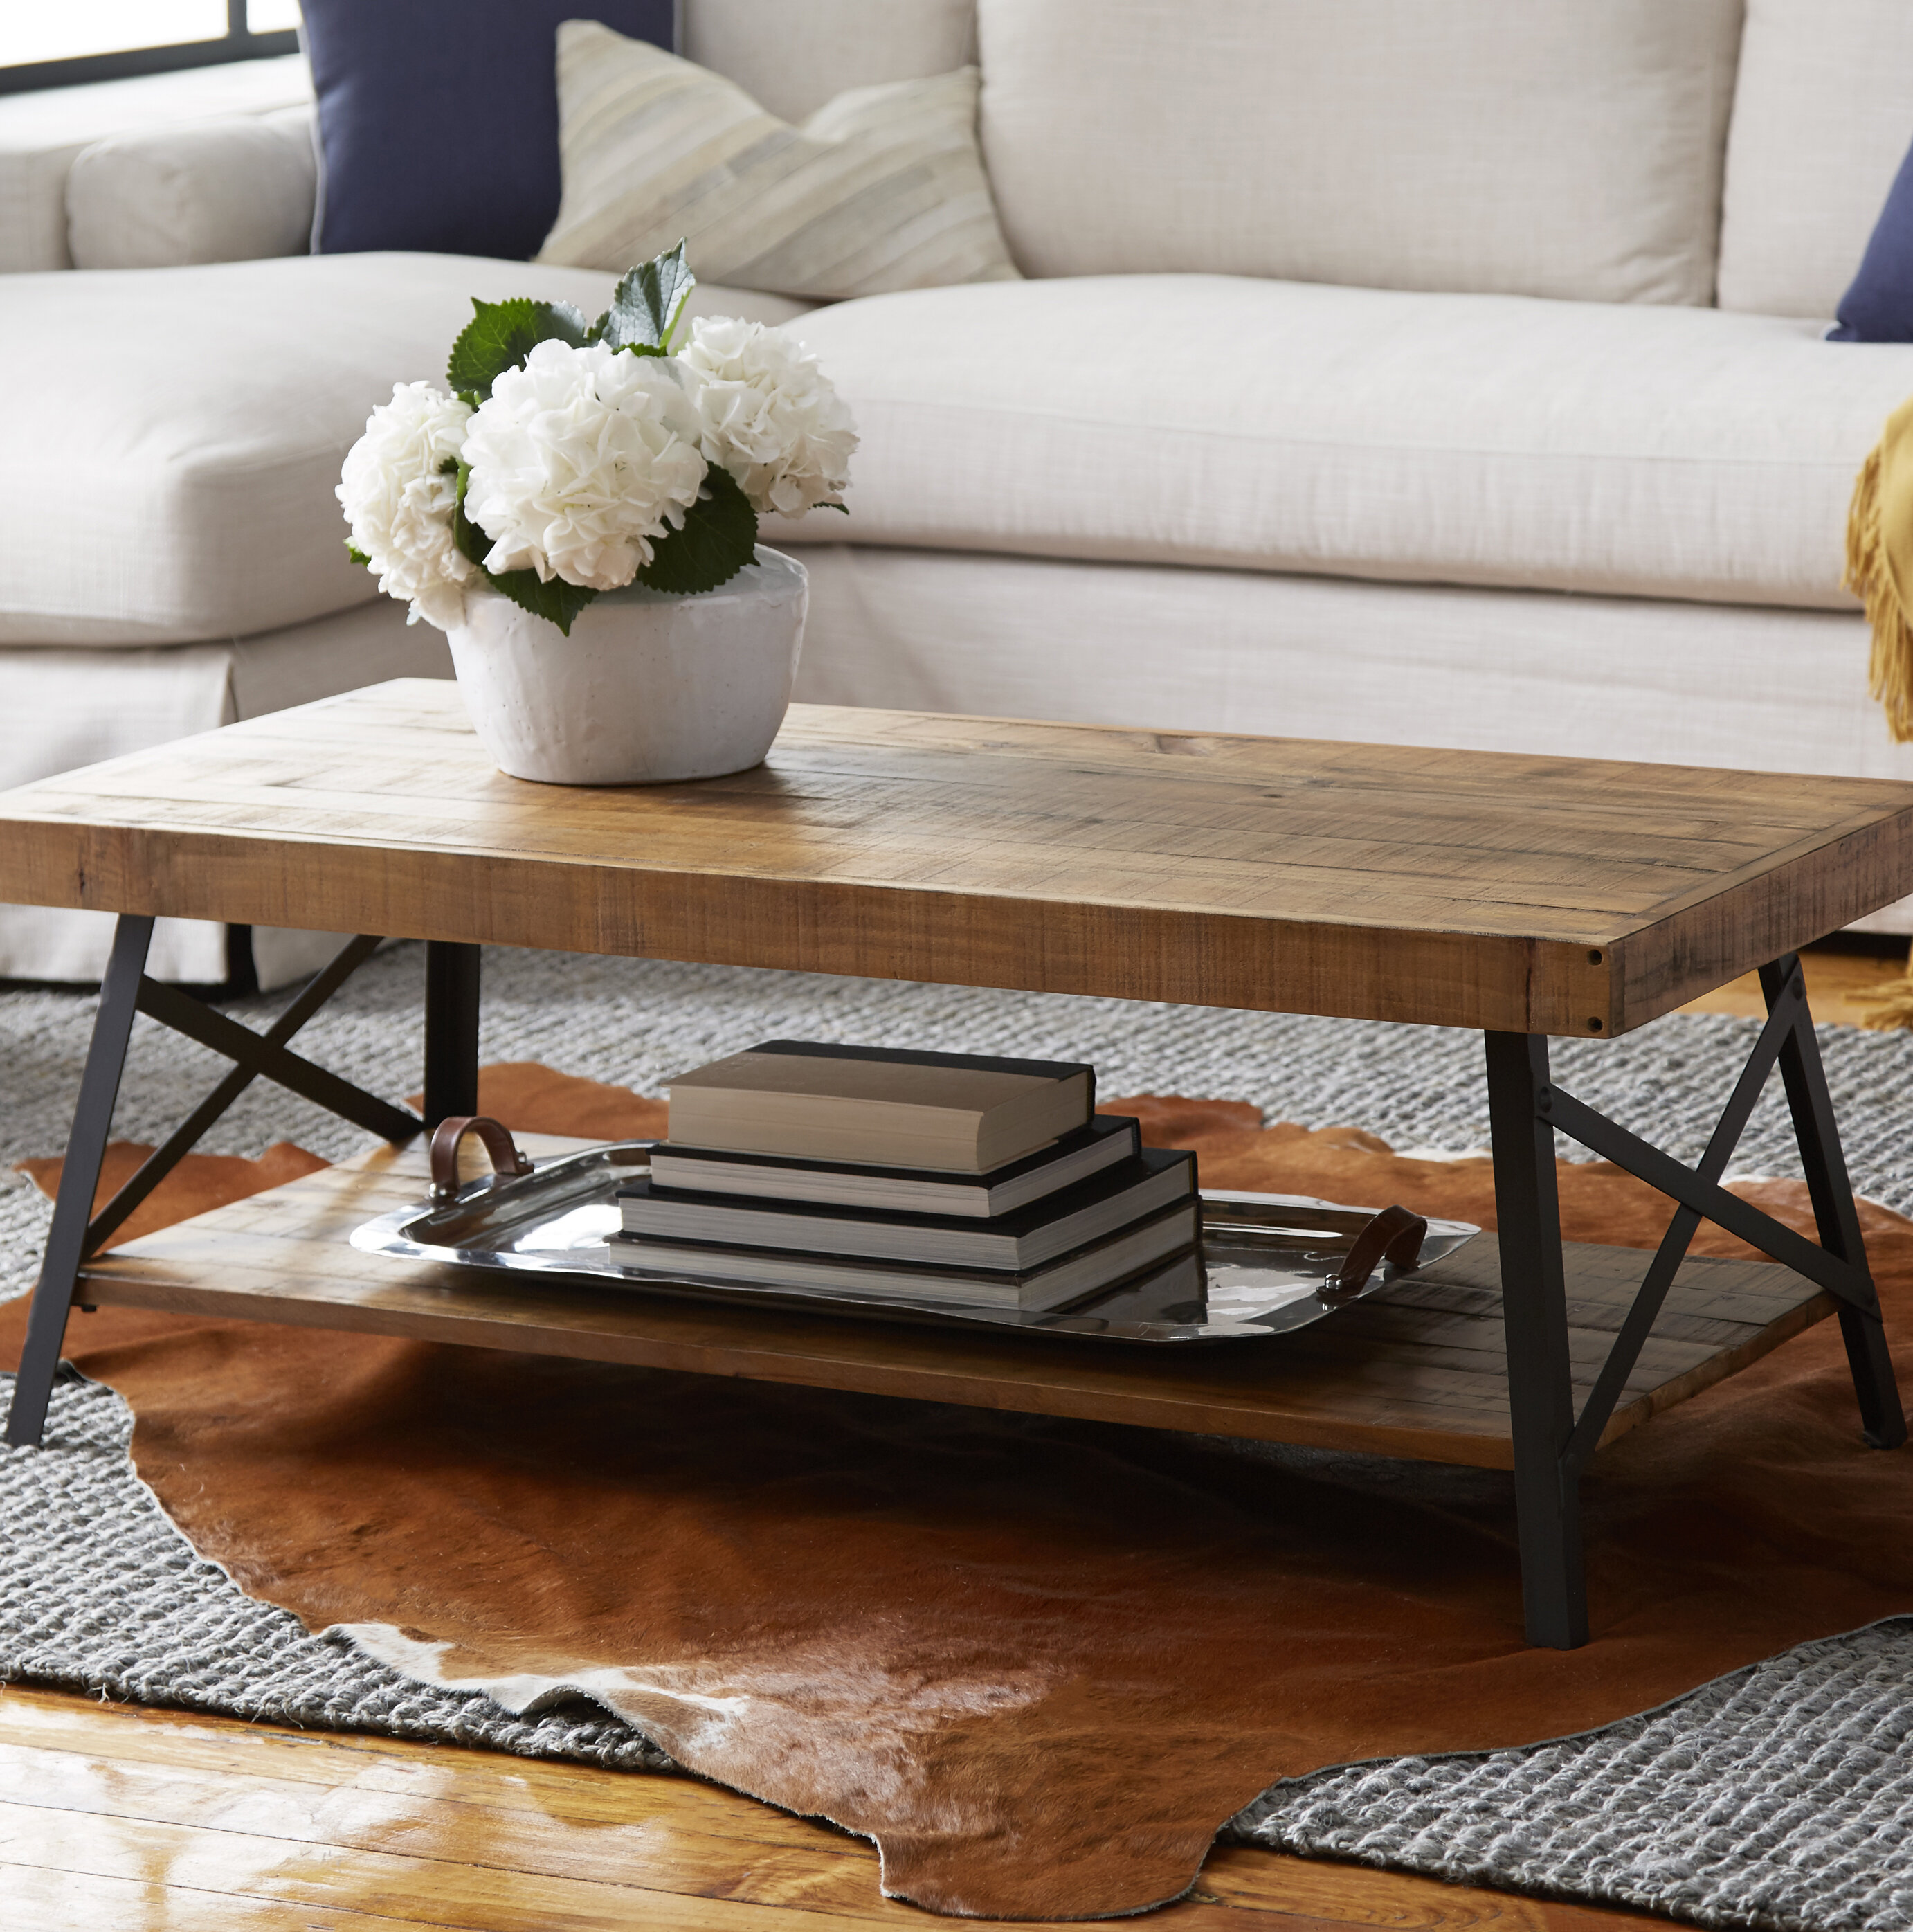 Wayfair Wooden Coffee Tables You Ll Love In 2021